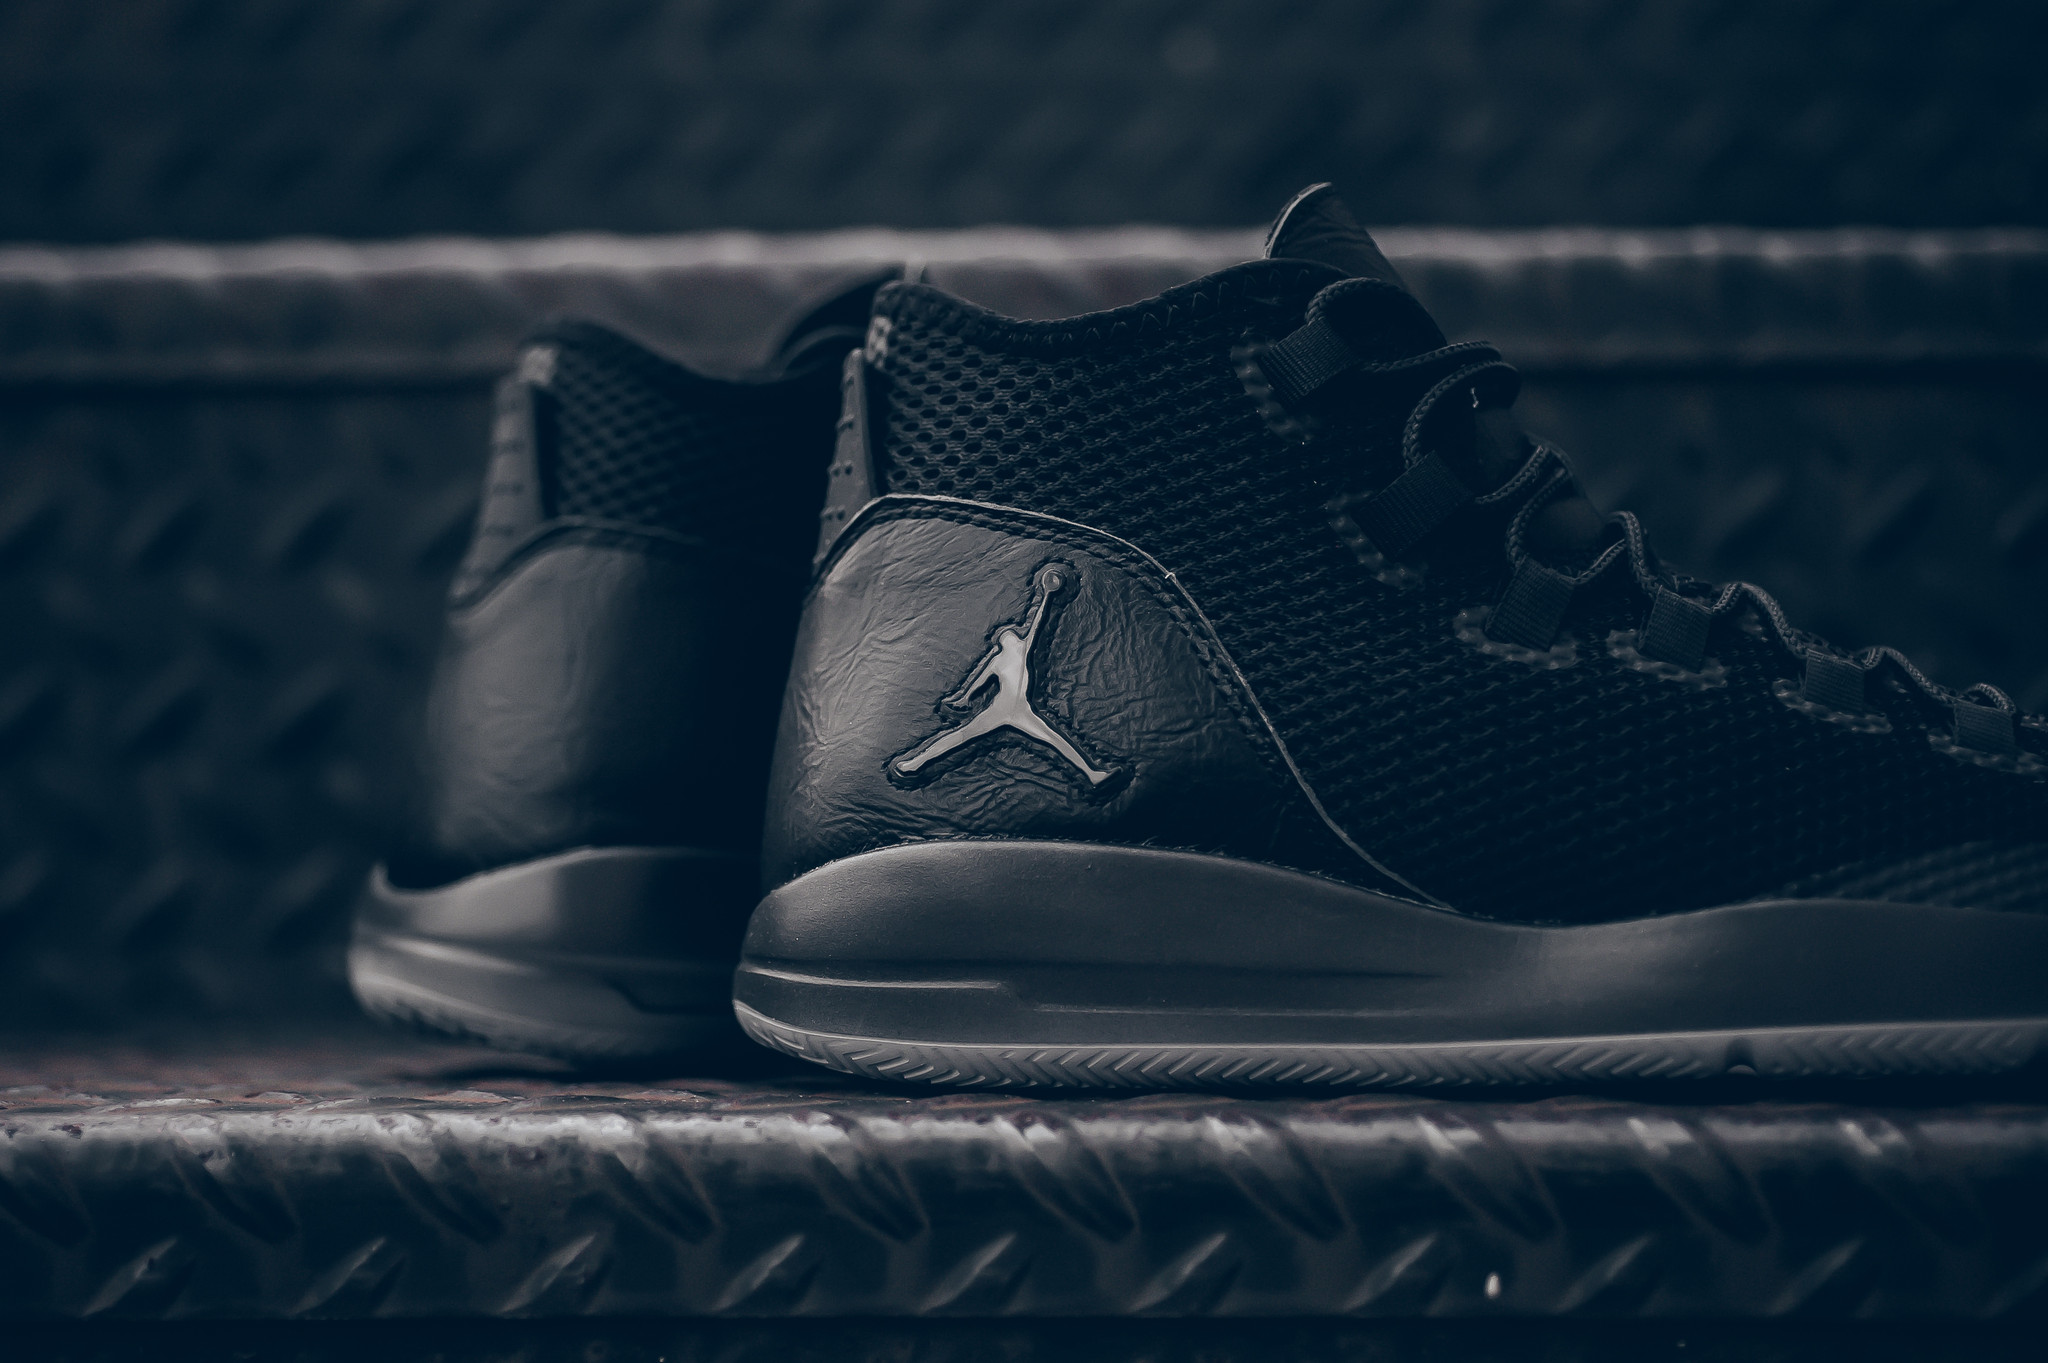 Jordan Reveal In Black Cat Mode